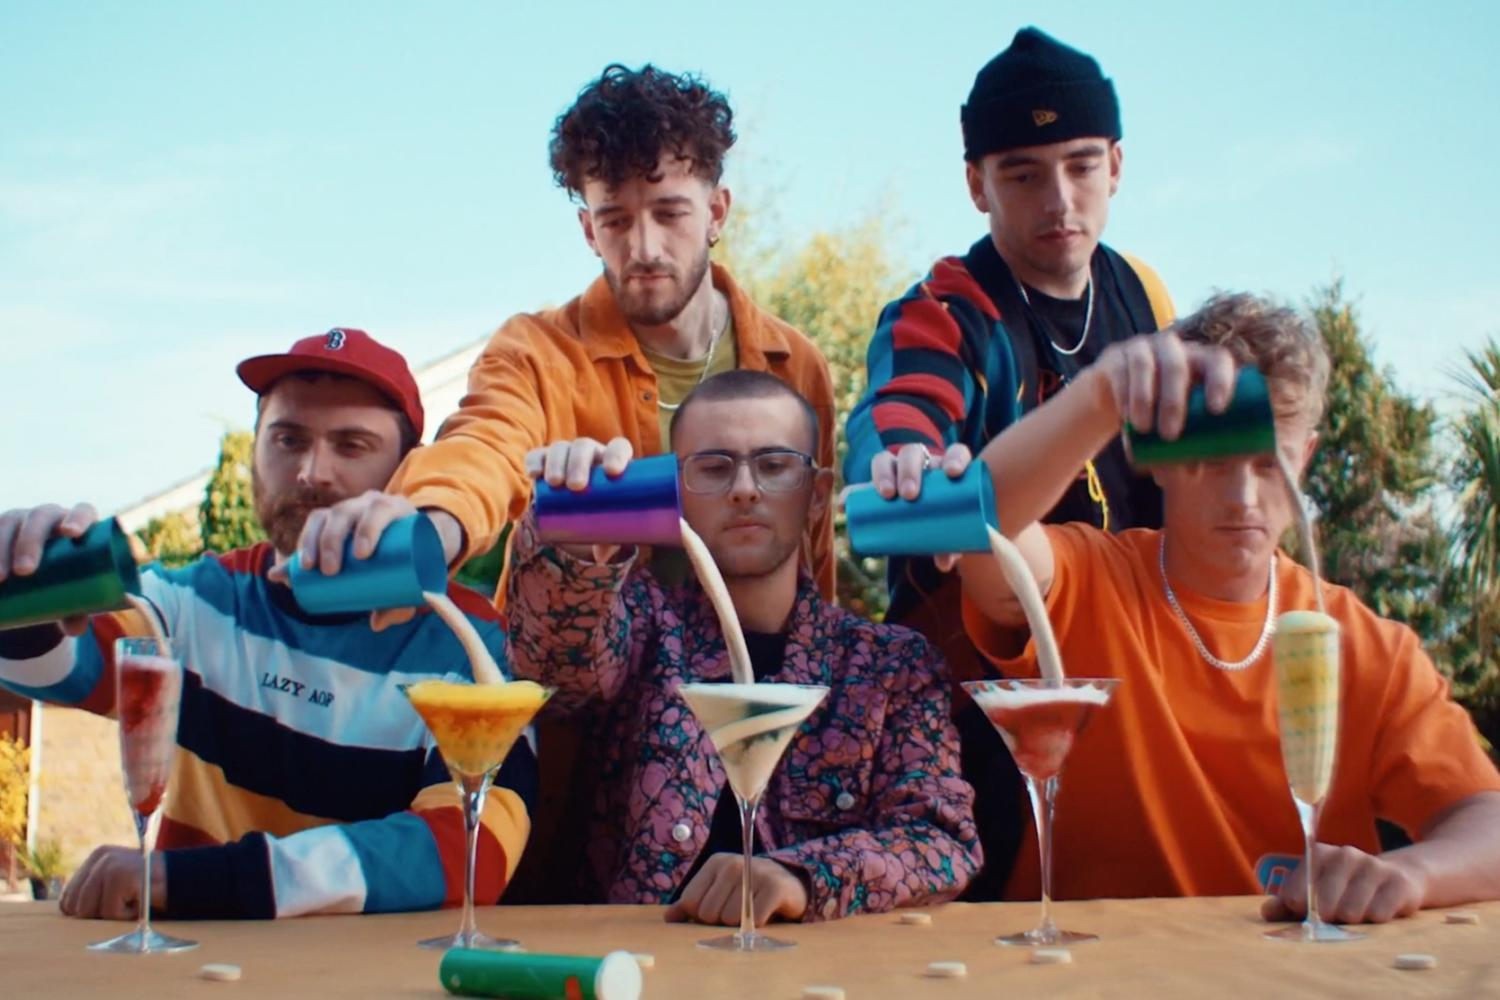 Easy Life reveal 'Daydreams' video